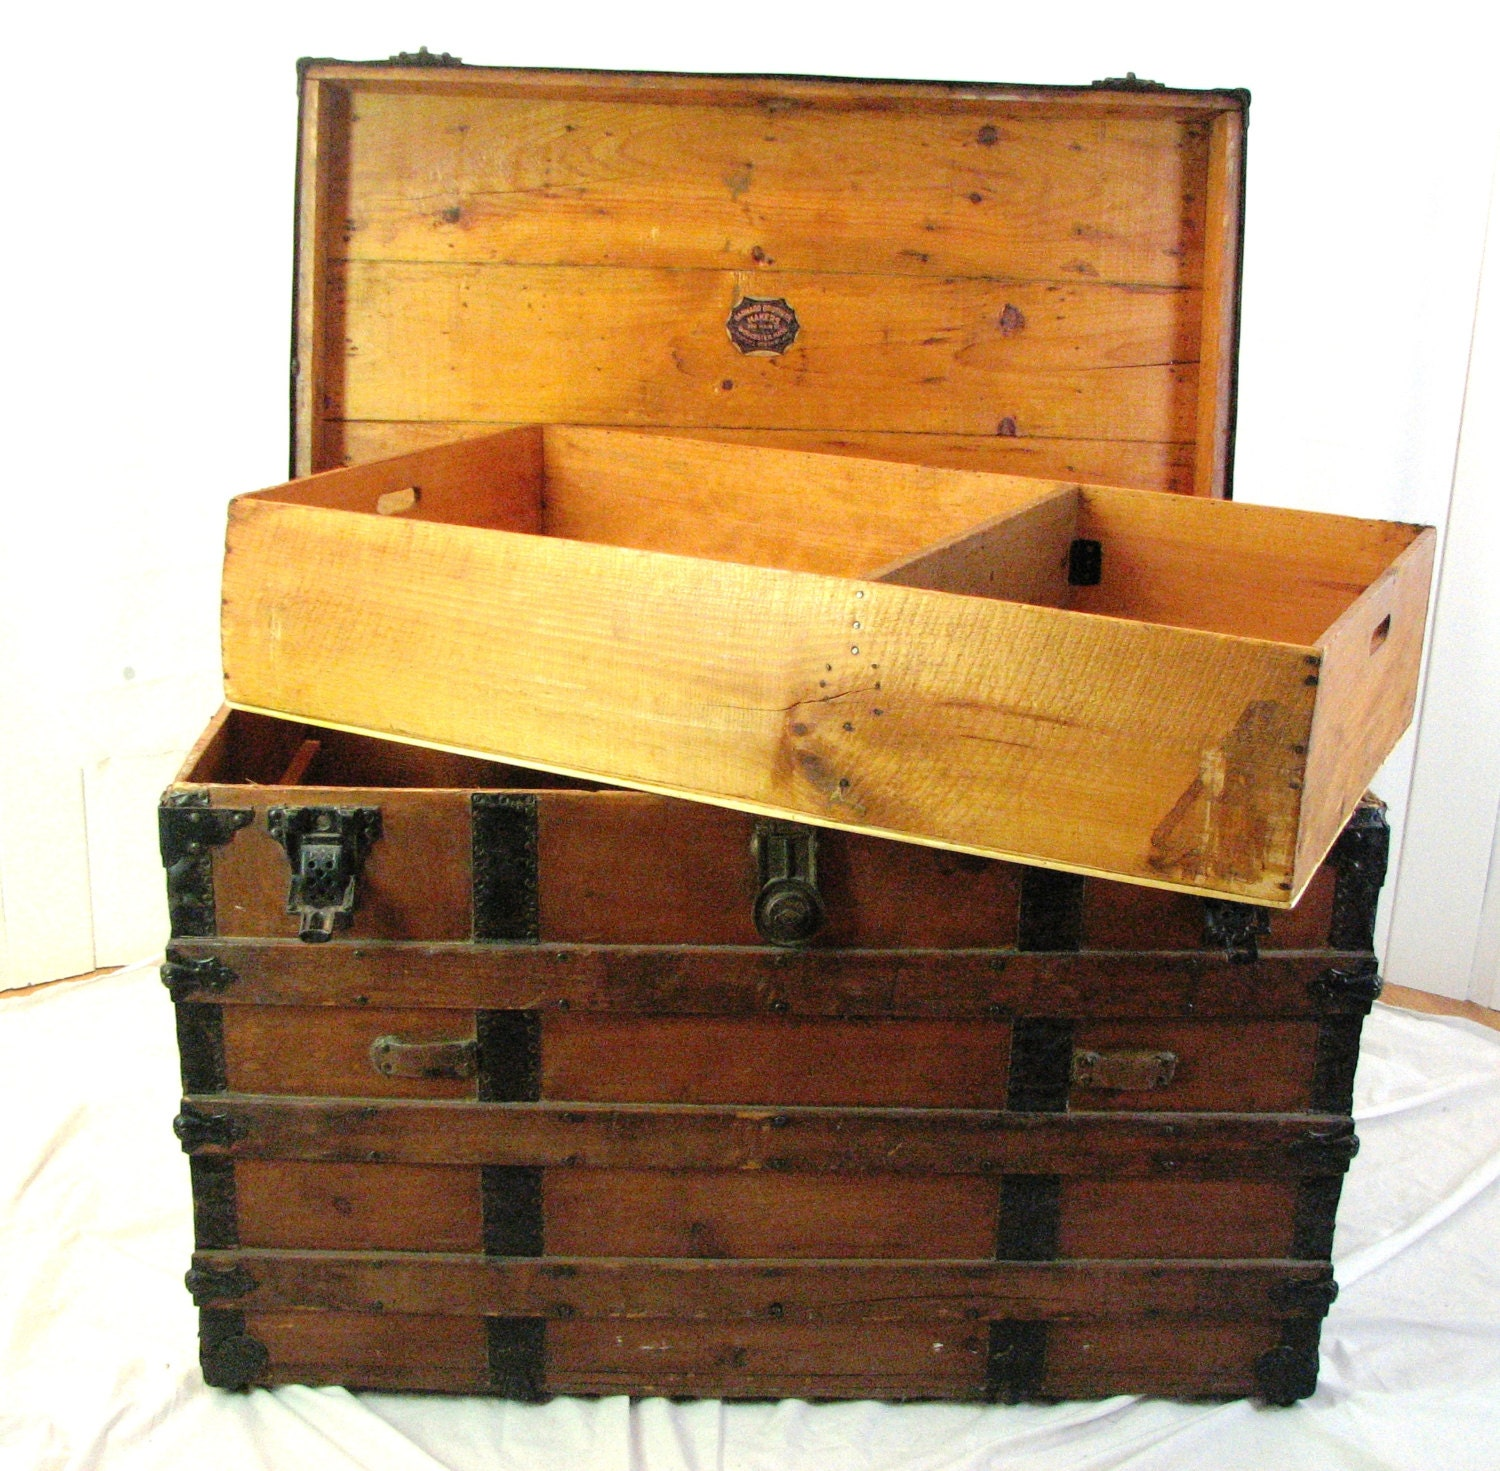 Antique Wooden Trunk Barnard Brothers 1910 1915 Vintage Trunk Slat Wood Chest Coffee